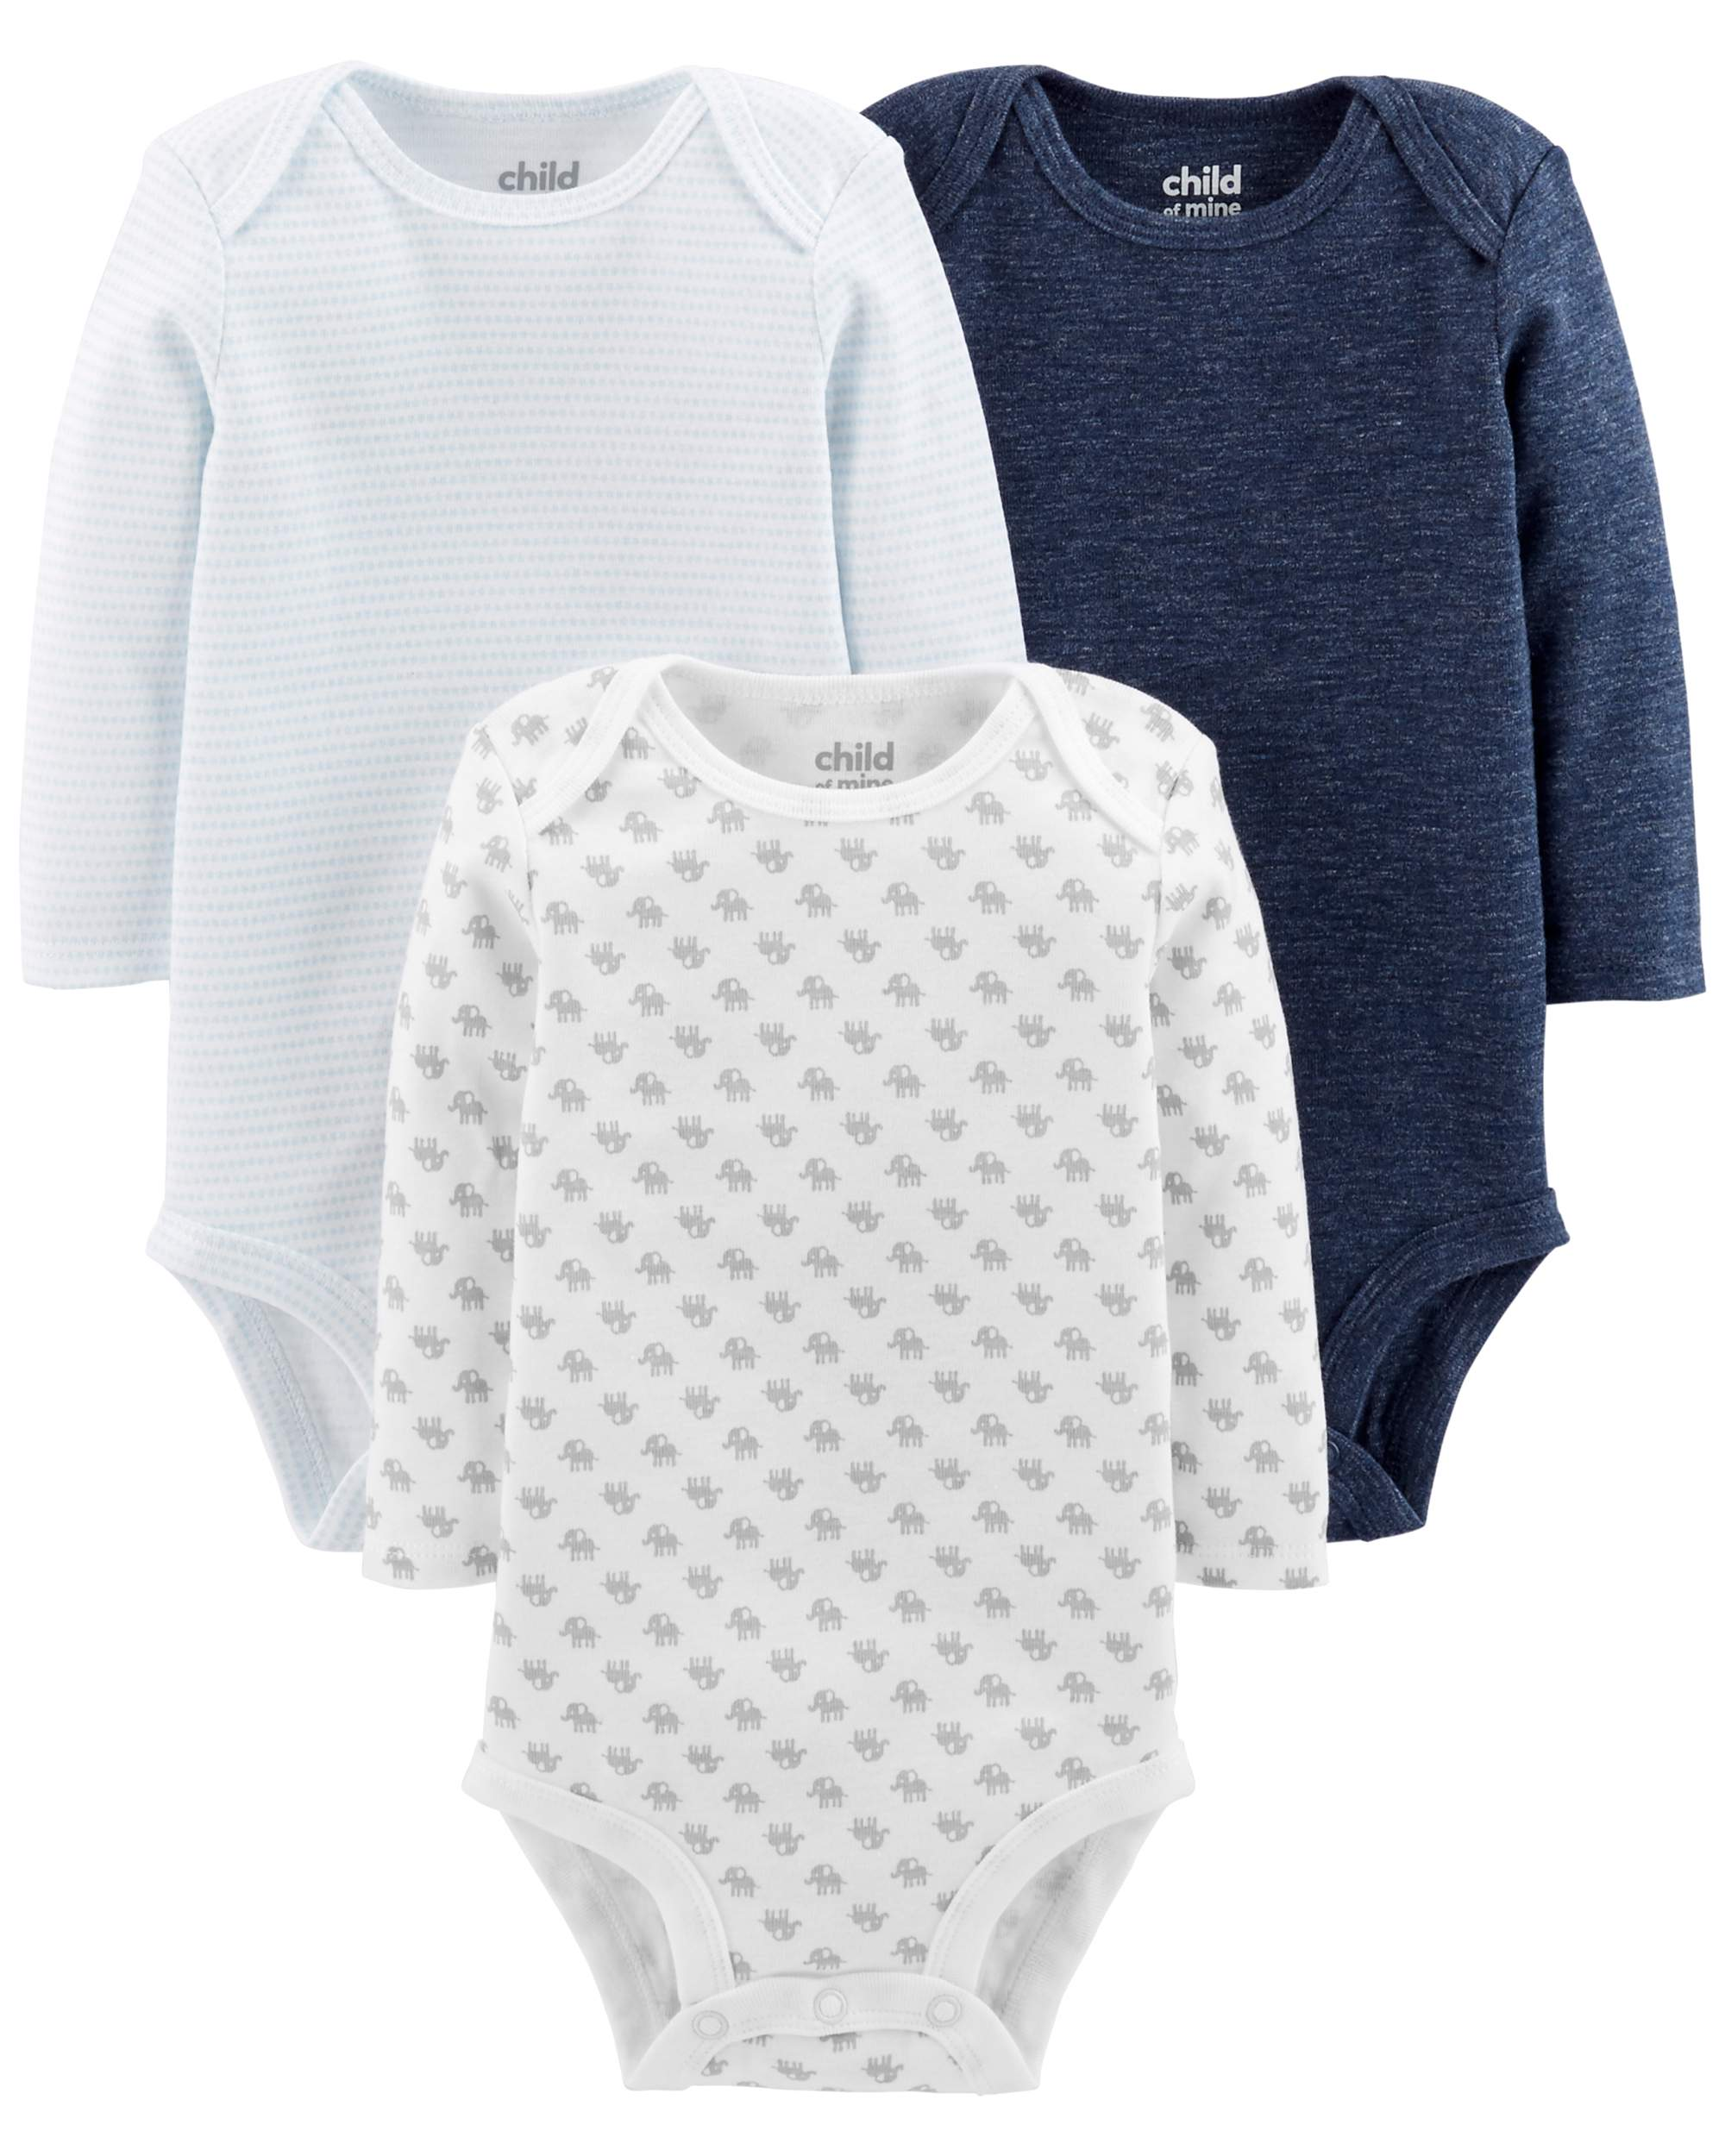 Basic Long Sleeve Bodysuits, 3-pack (Baby Boys) by WILLIAM CARTER COMPA